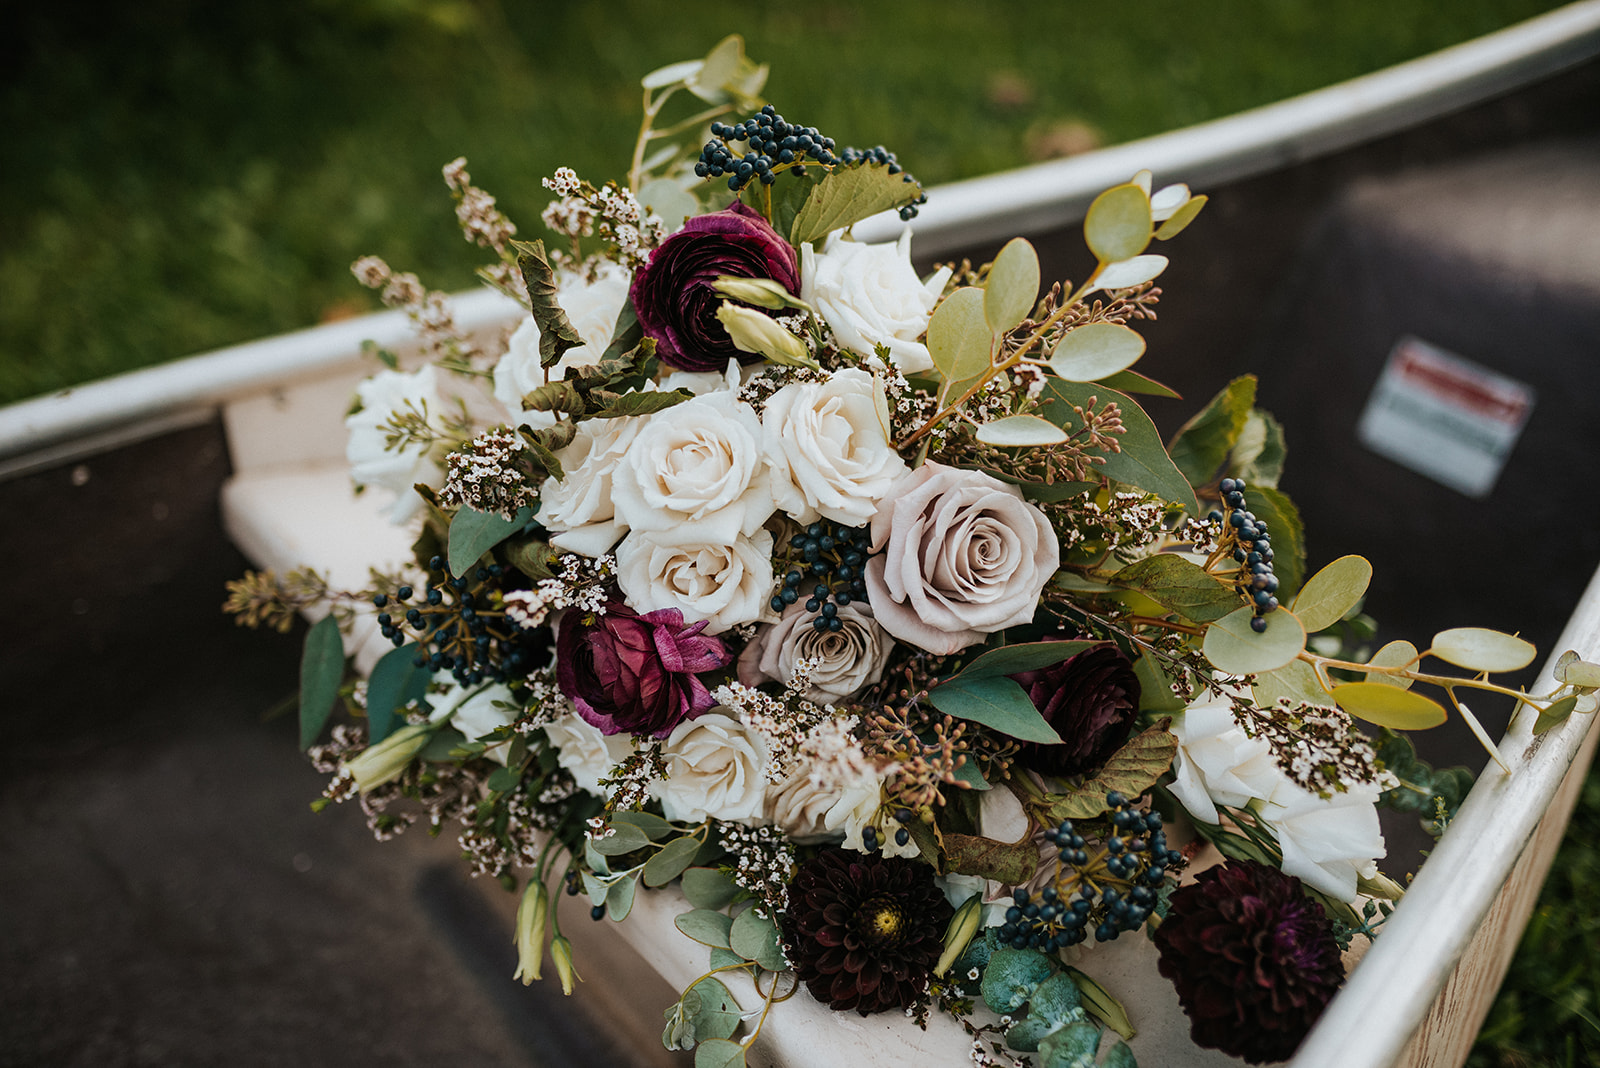 overthevineswisconsinwedding_0940.jpg